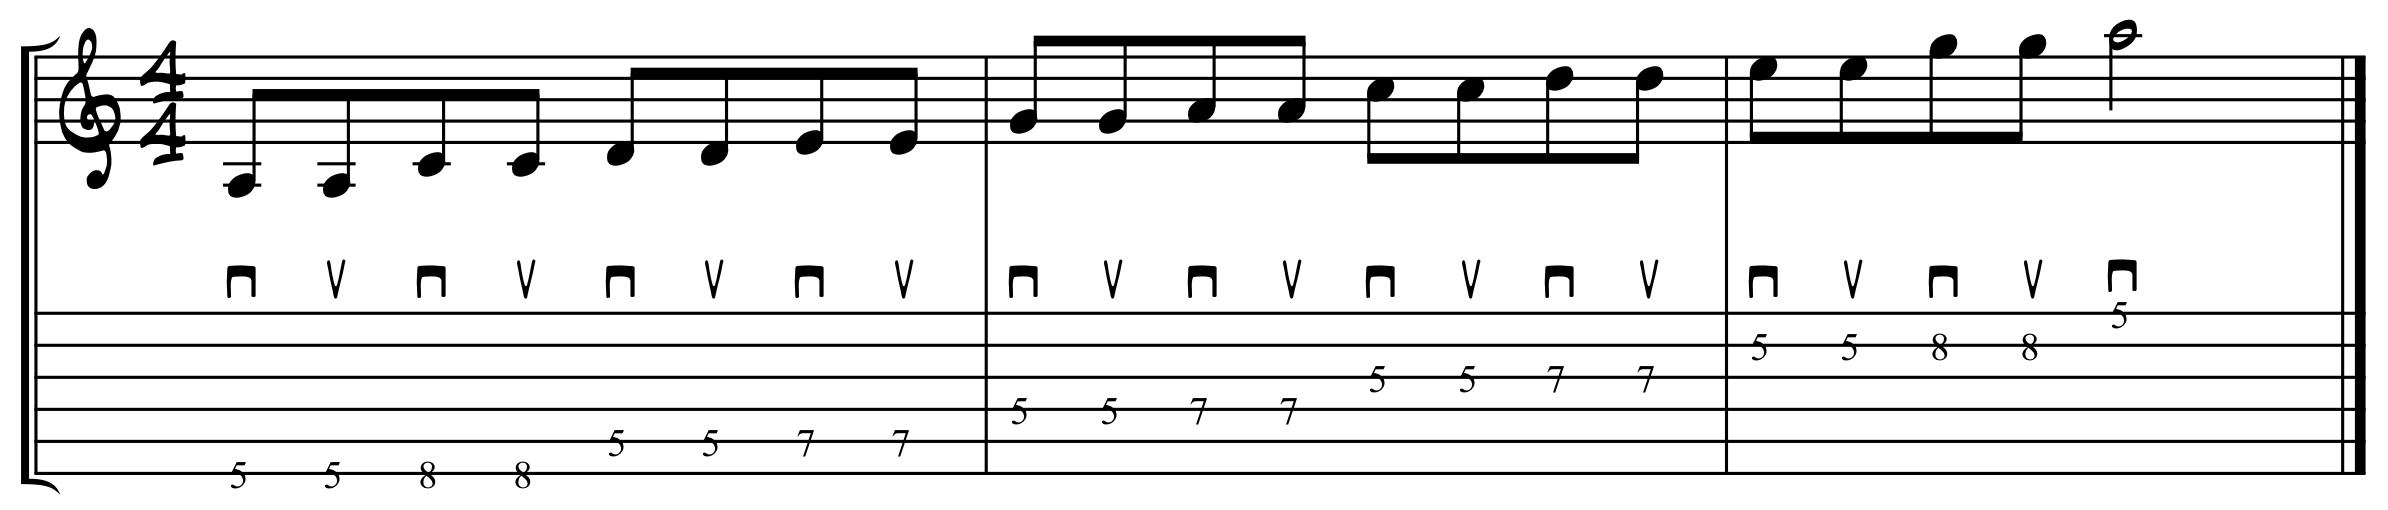 A minor pentatonic alternate picking exercise